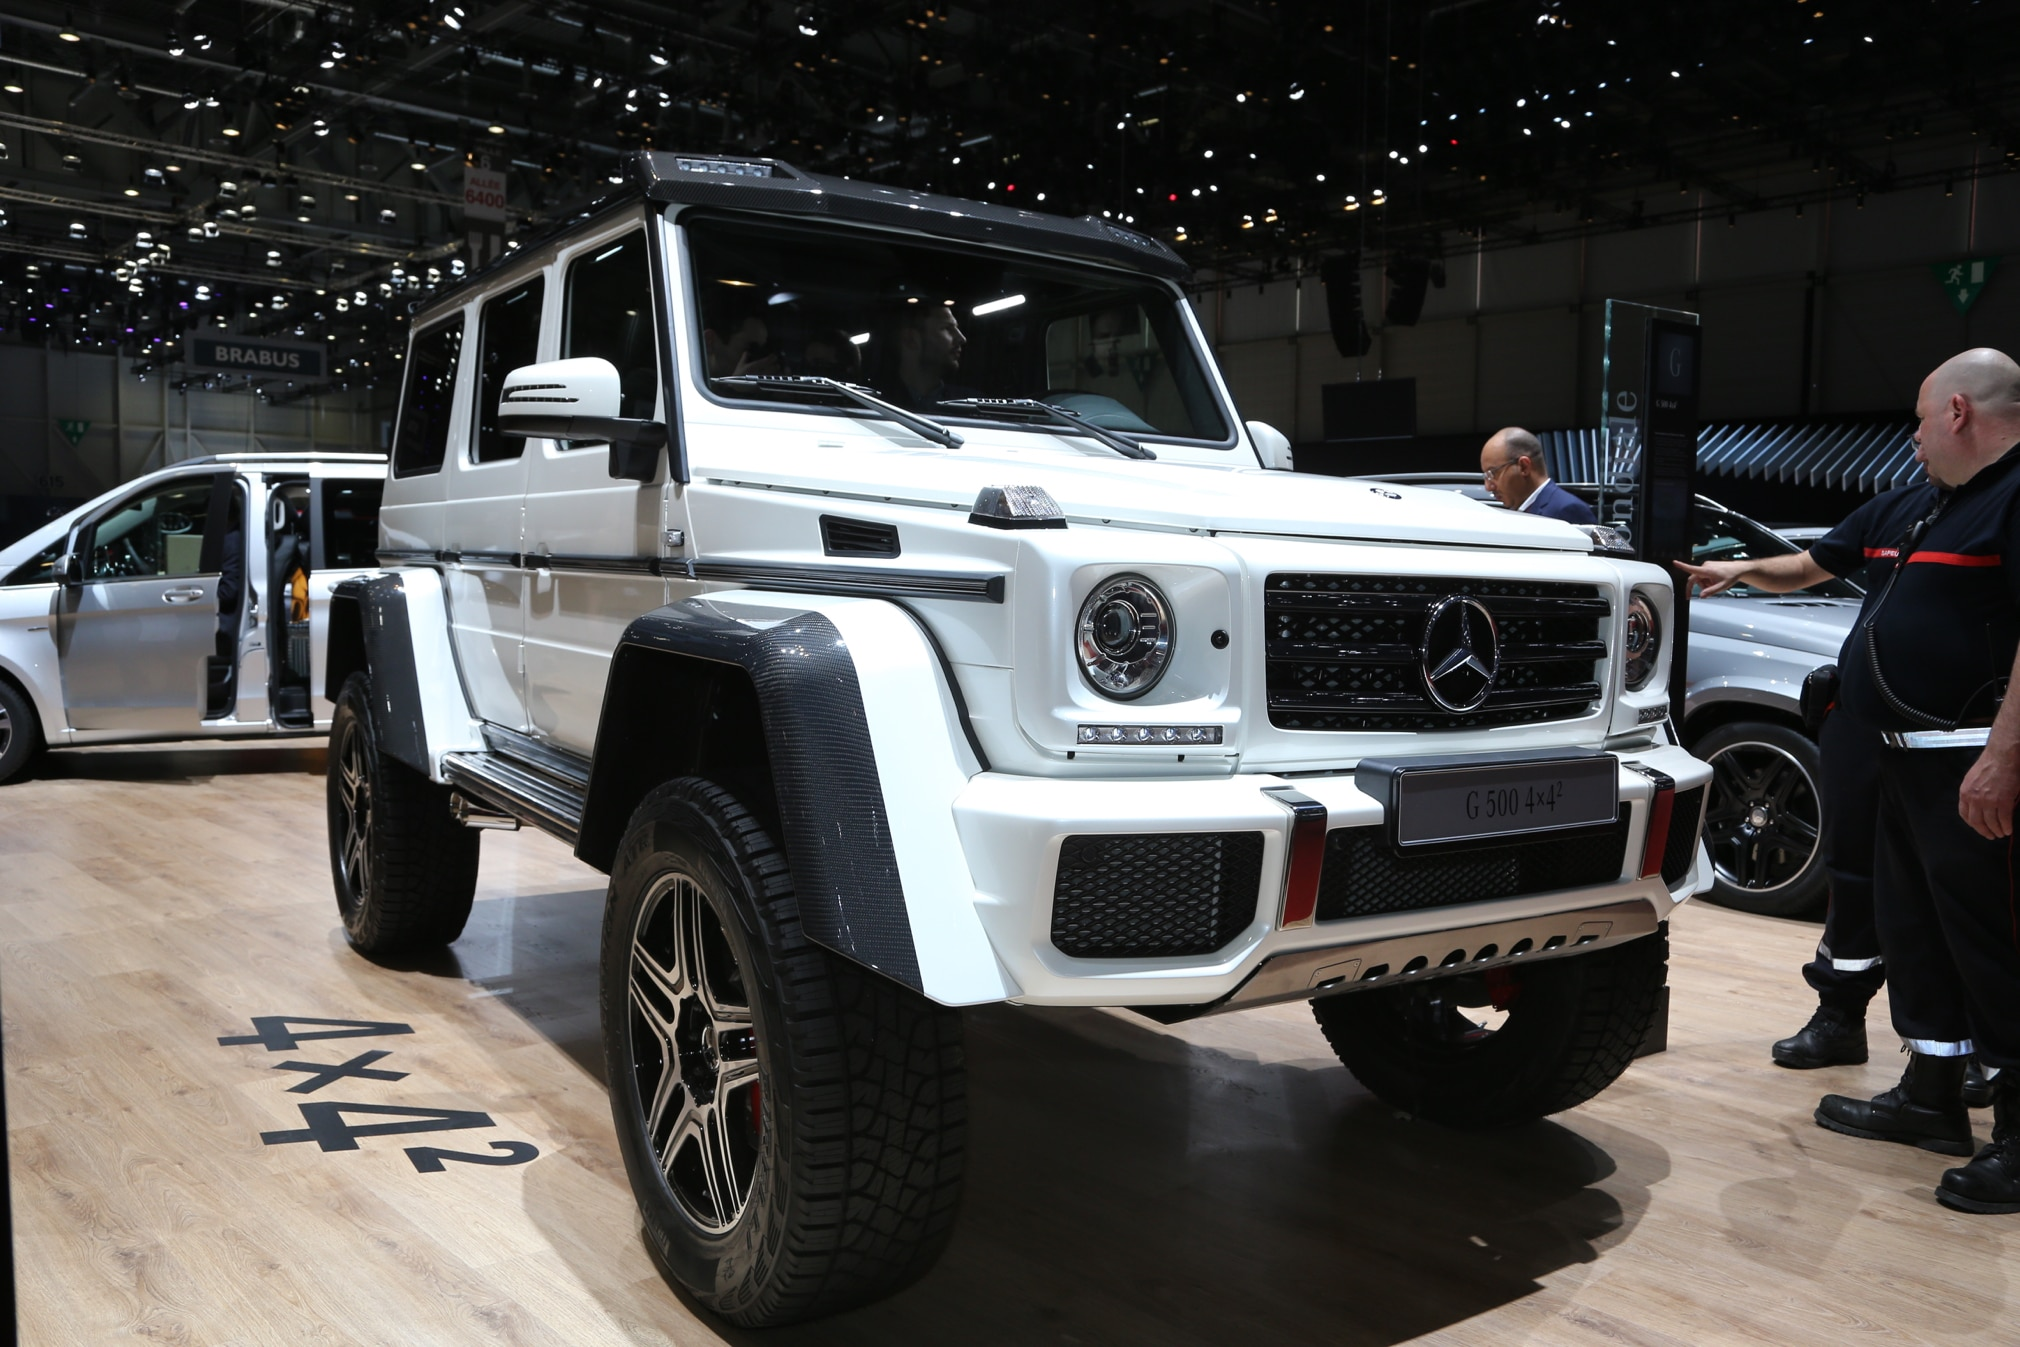 Mercedes-Benz G500 4x4 Squared Enters Production, Costs $256,000 on mercedes cl-class, mercedes black cl, mercedes cl 500, 2006 mercedes cl, mercedes w140 cl, 2005 mercedes cl, mercedes amg 65, mercedes cl 63 amg 2010, mercedes cl 63 amg coupe, mercedes 1992 cl, mercedes car cl,